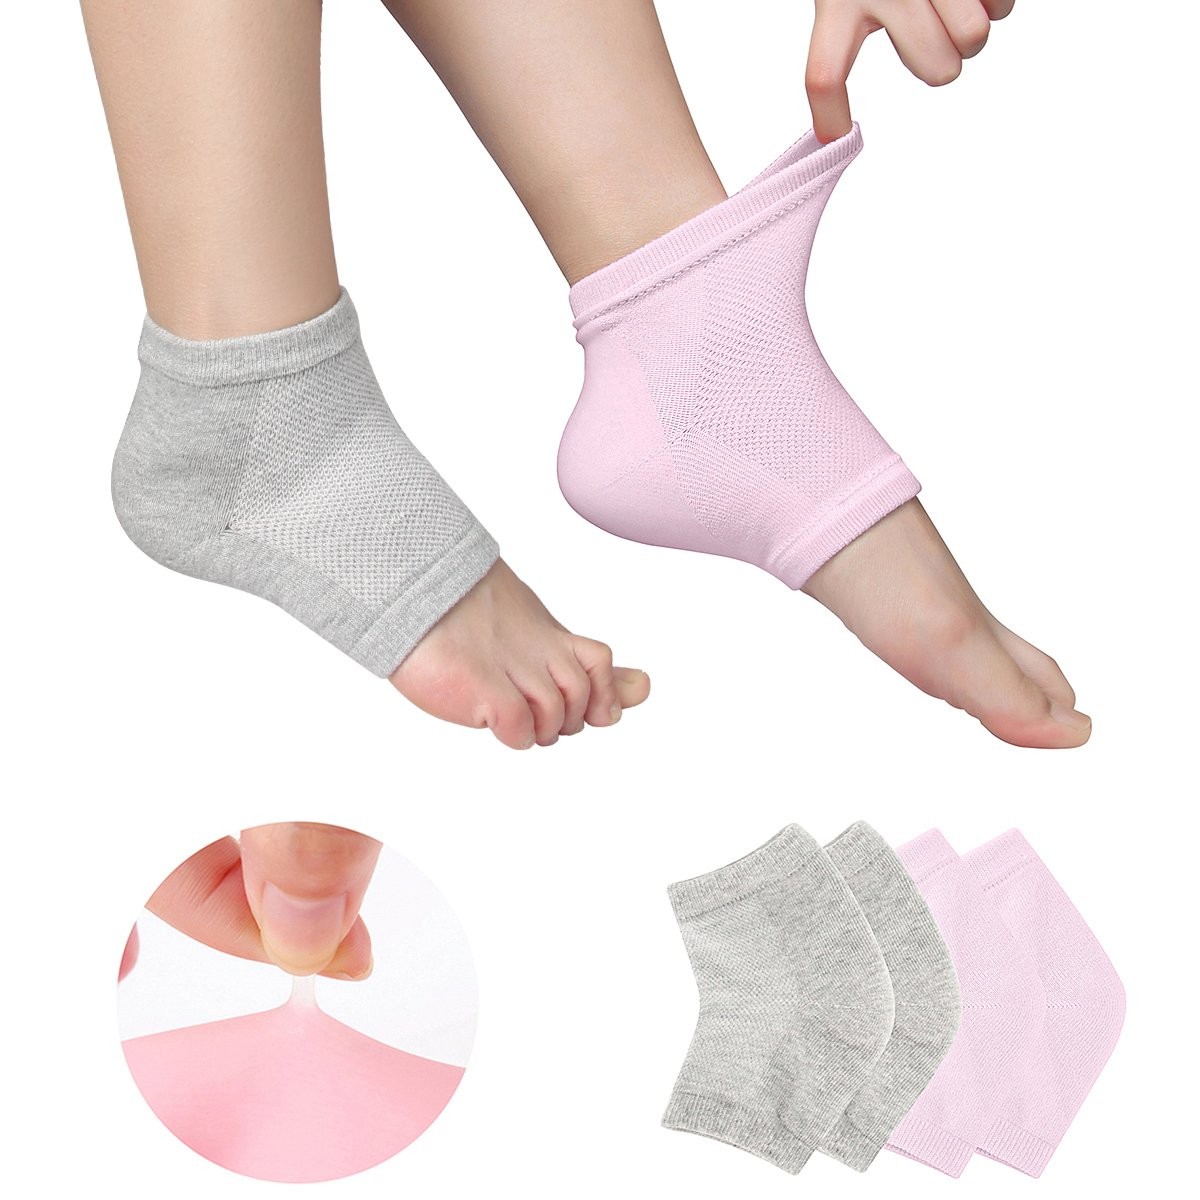 Codream Vented Moisturizing Gel Heel Socks Day Night Toe Open Feet Care Sets Ultimate Treatment for Dry Hard Cracked Skin with Spa Quality Botanical Gel Pack of 2 Pairs Pink and Grey